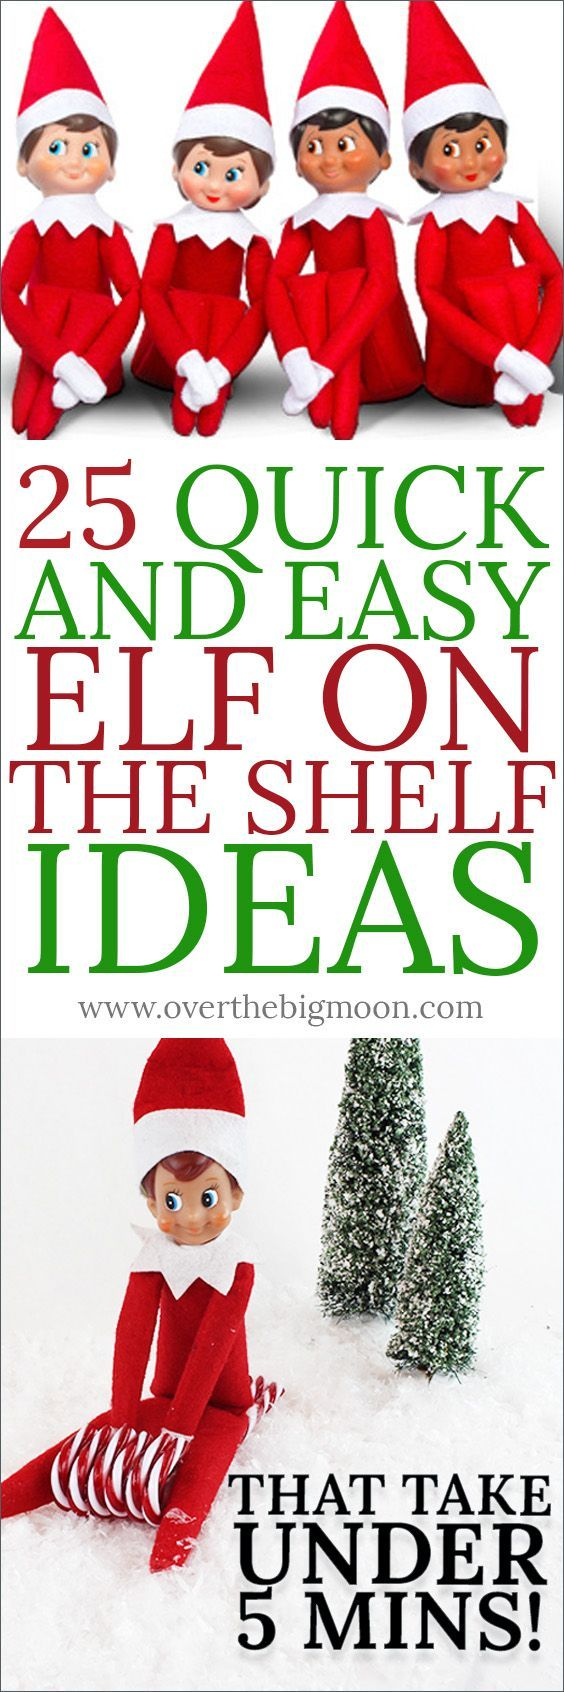 25 Quick Elf on the Shelf Ideas that take UNDER 5 MINS! Pin this for quick reference this Christmas!